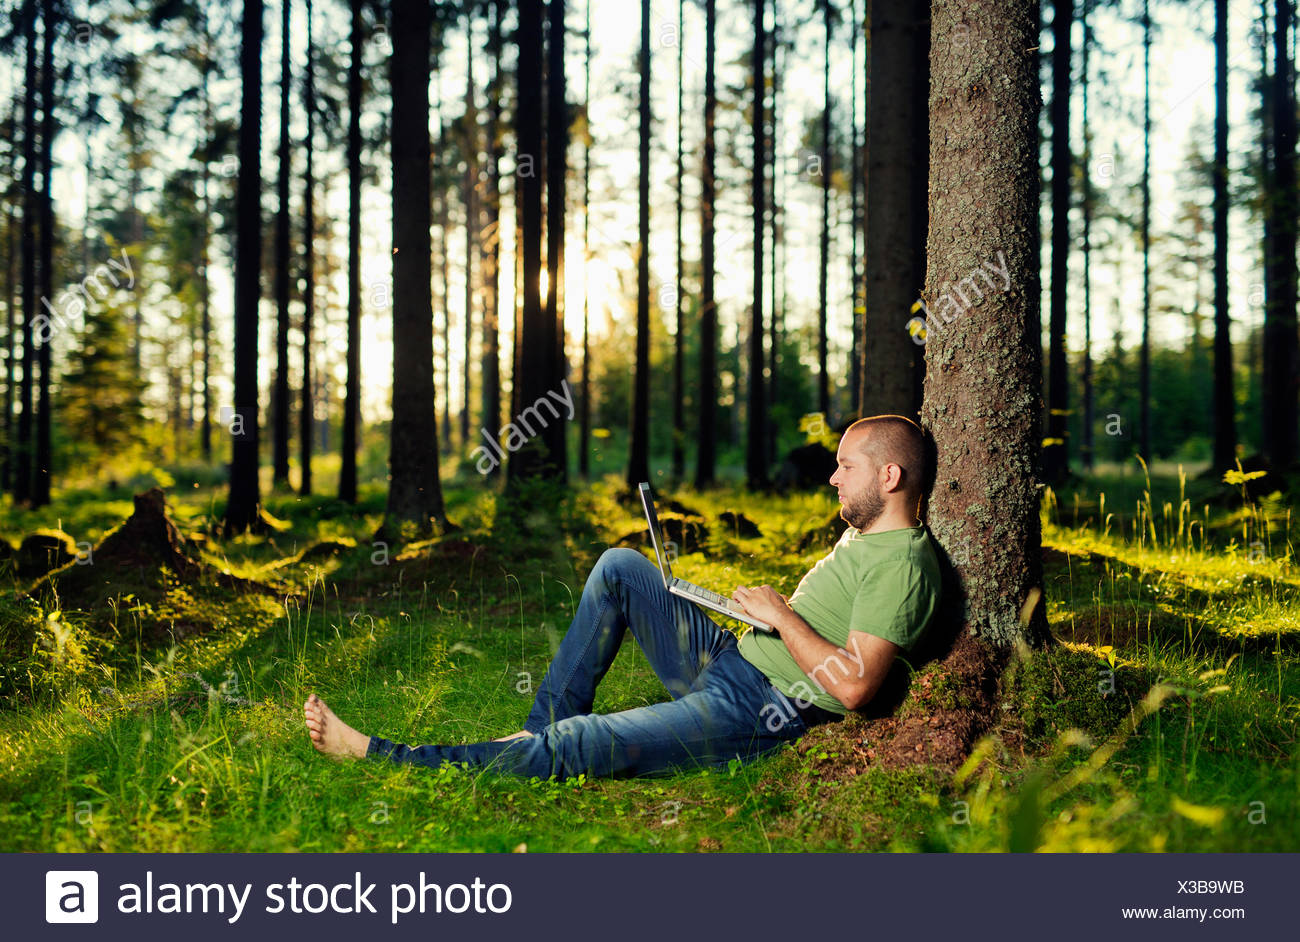 Man sitting by tree in spruce forest, using laptop - Stock Image